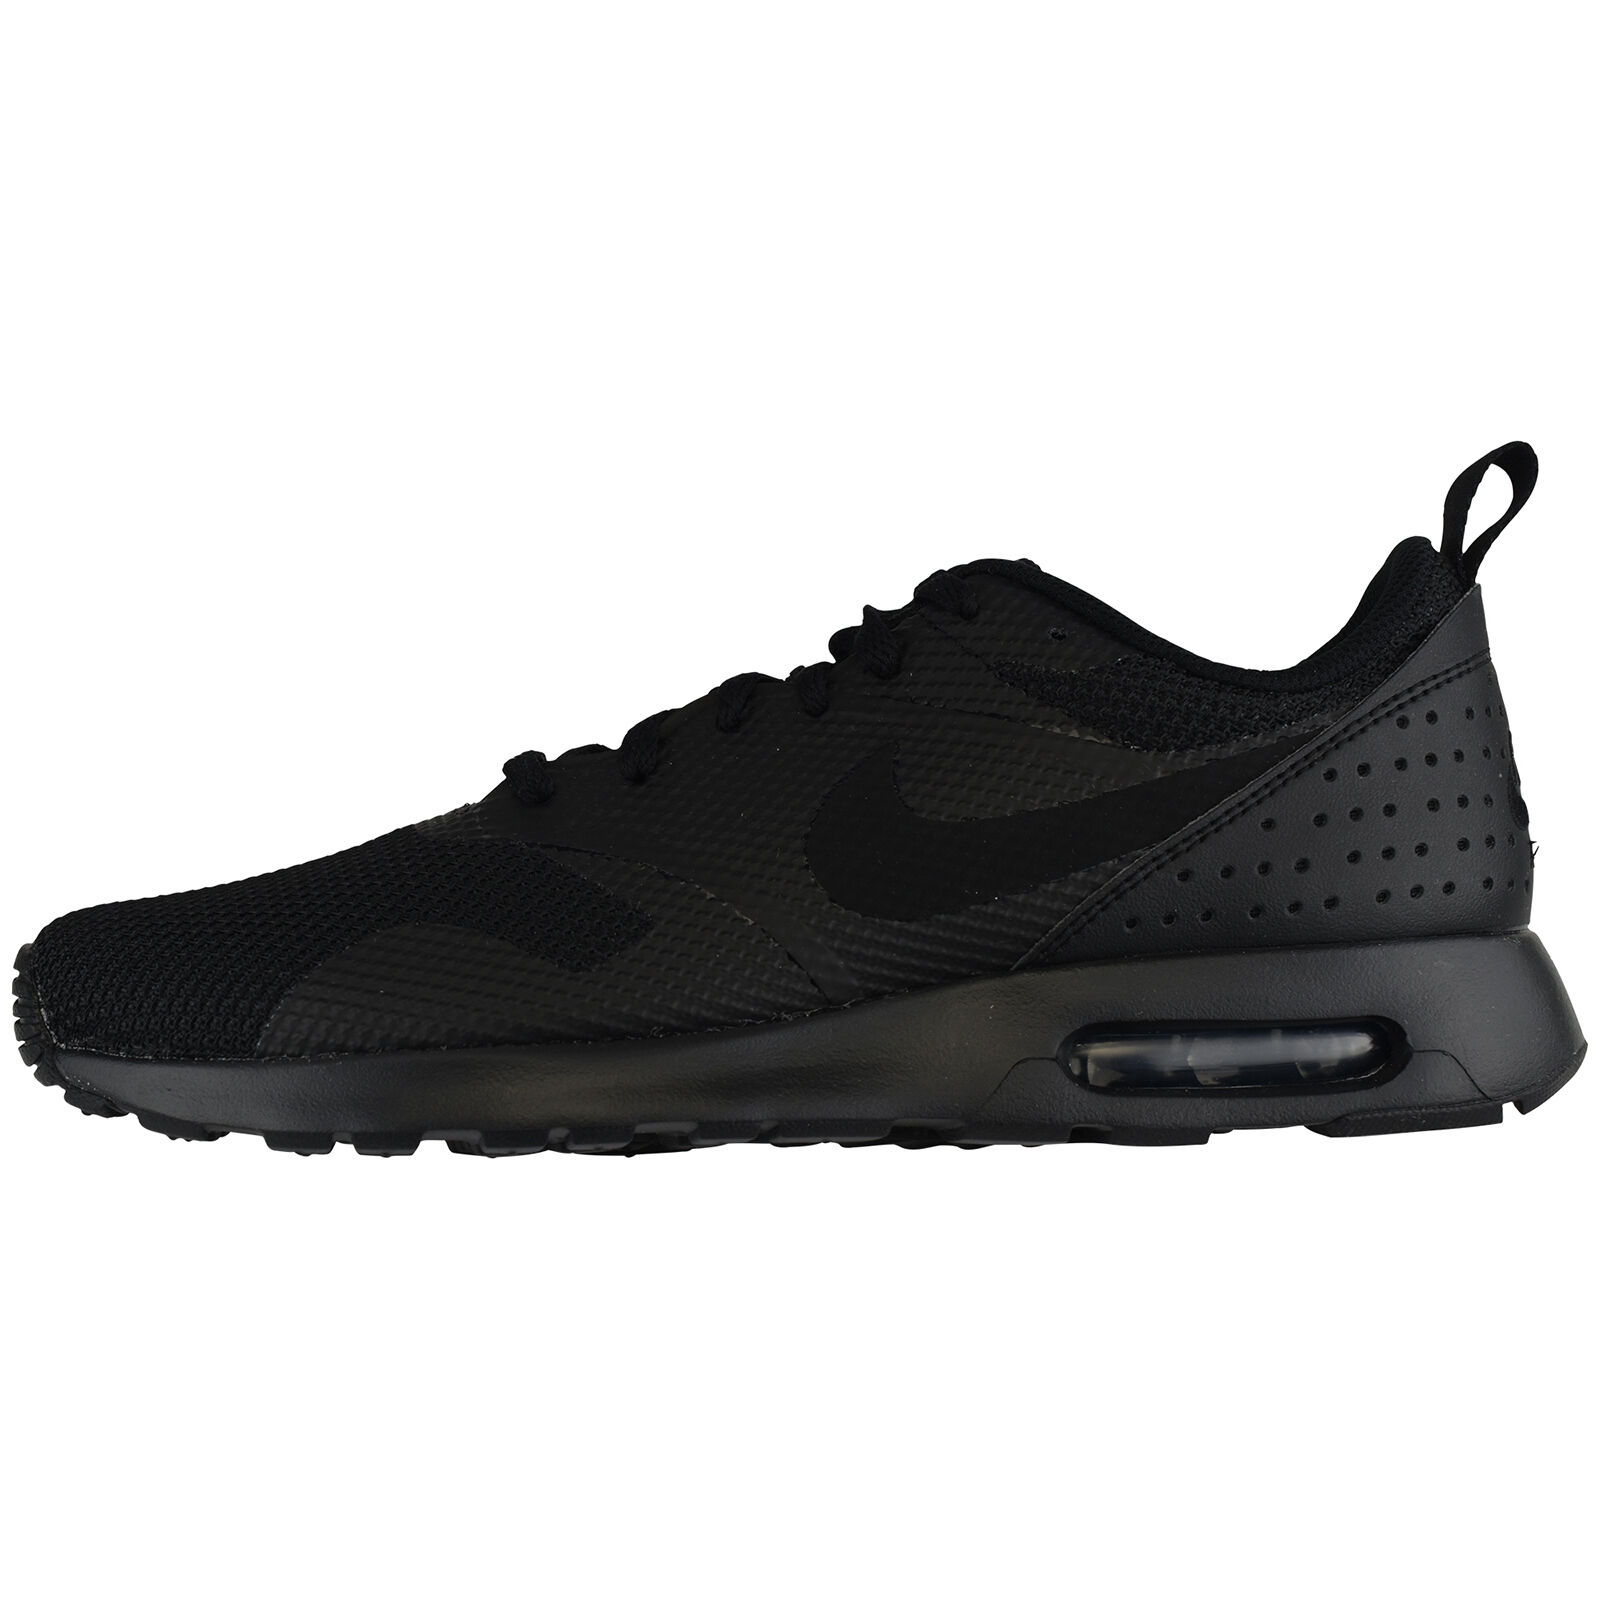 Nike Air Max Tavas shoes 705149-019 Classic Lifestyle Casual shoes Trainers